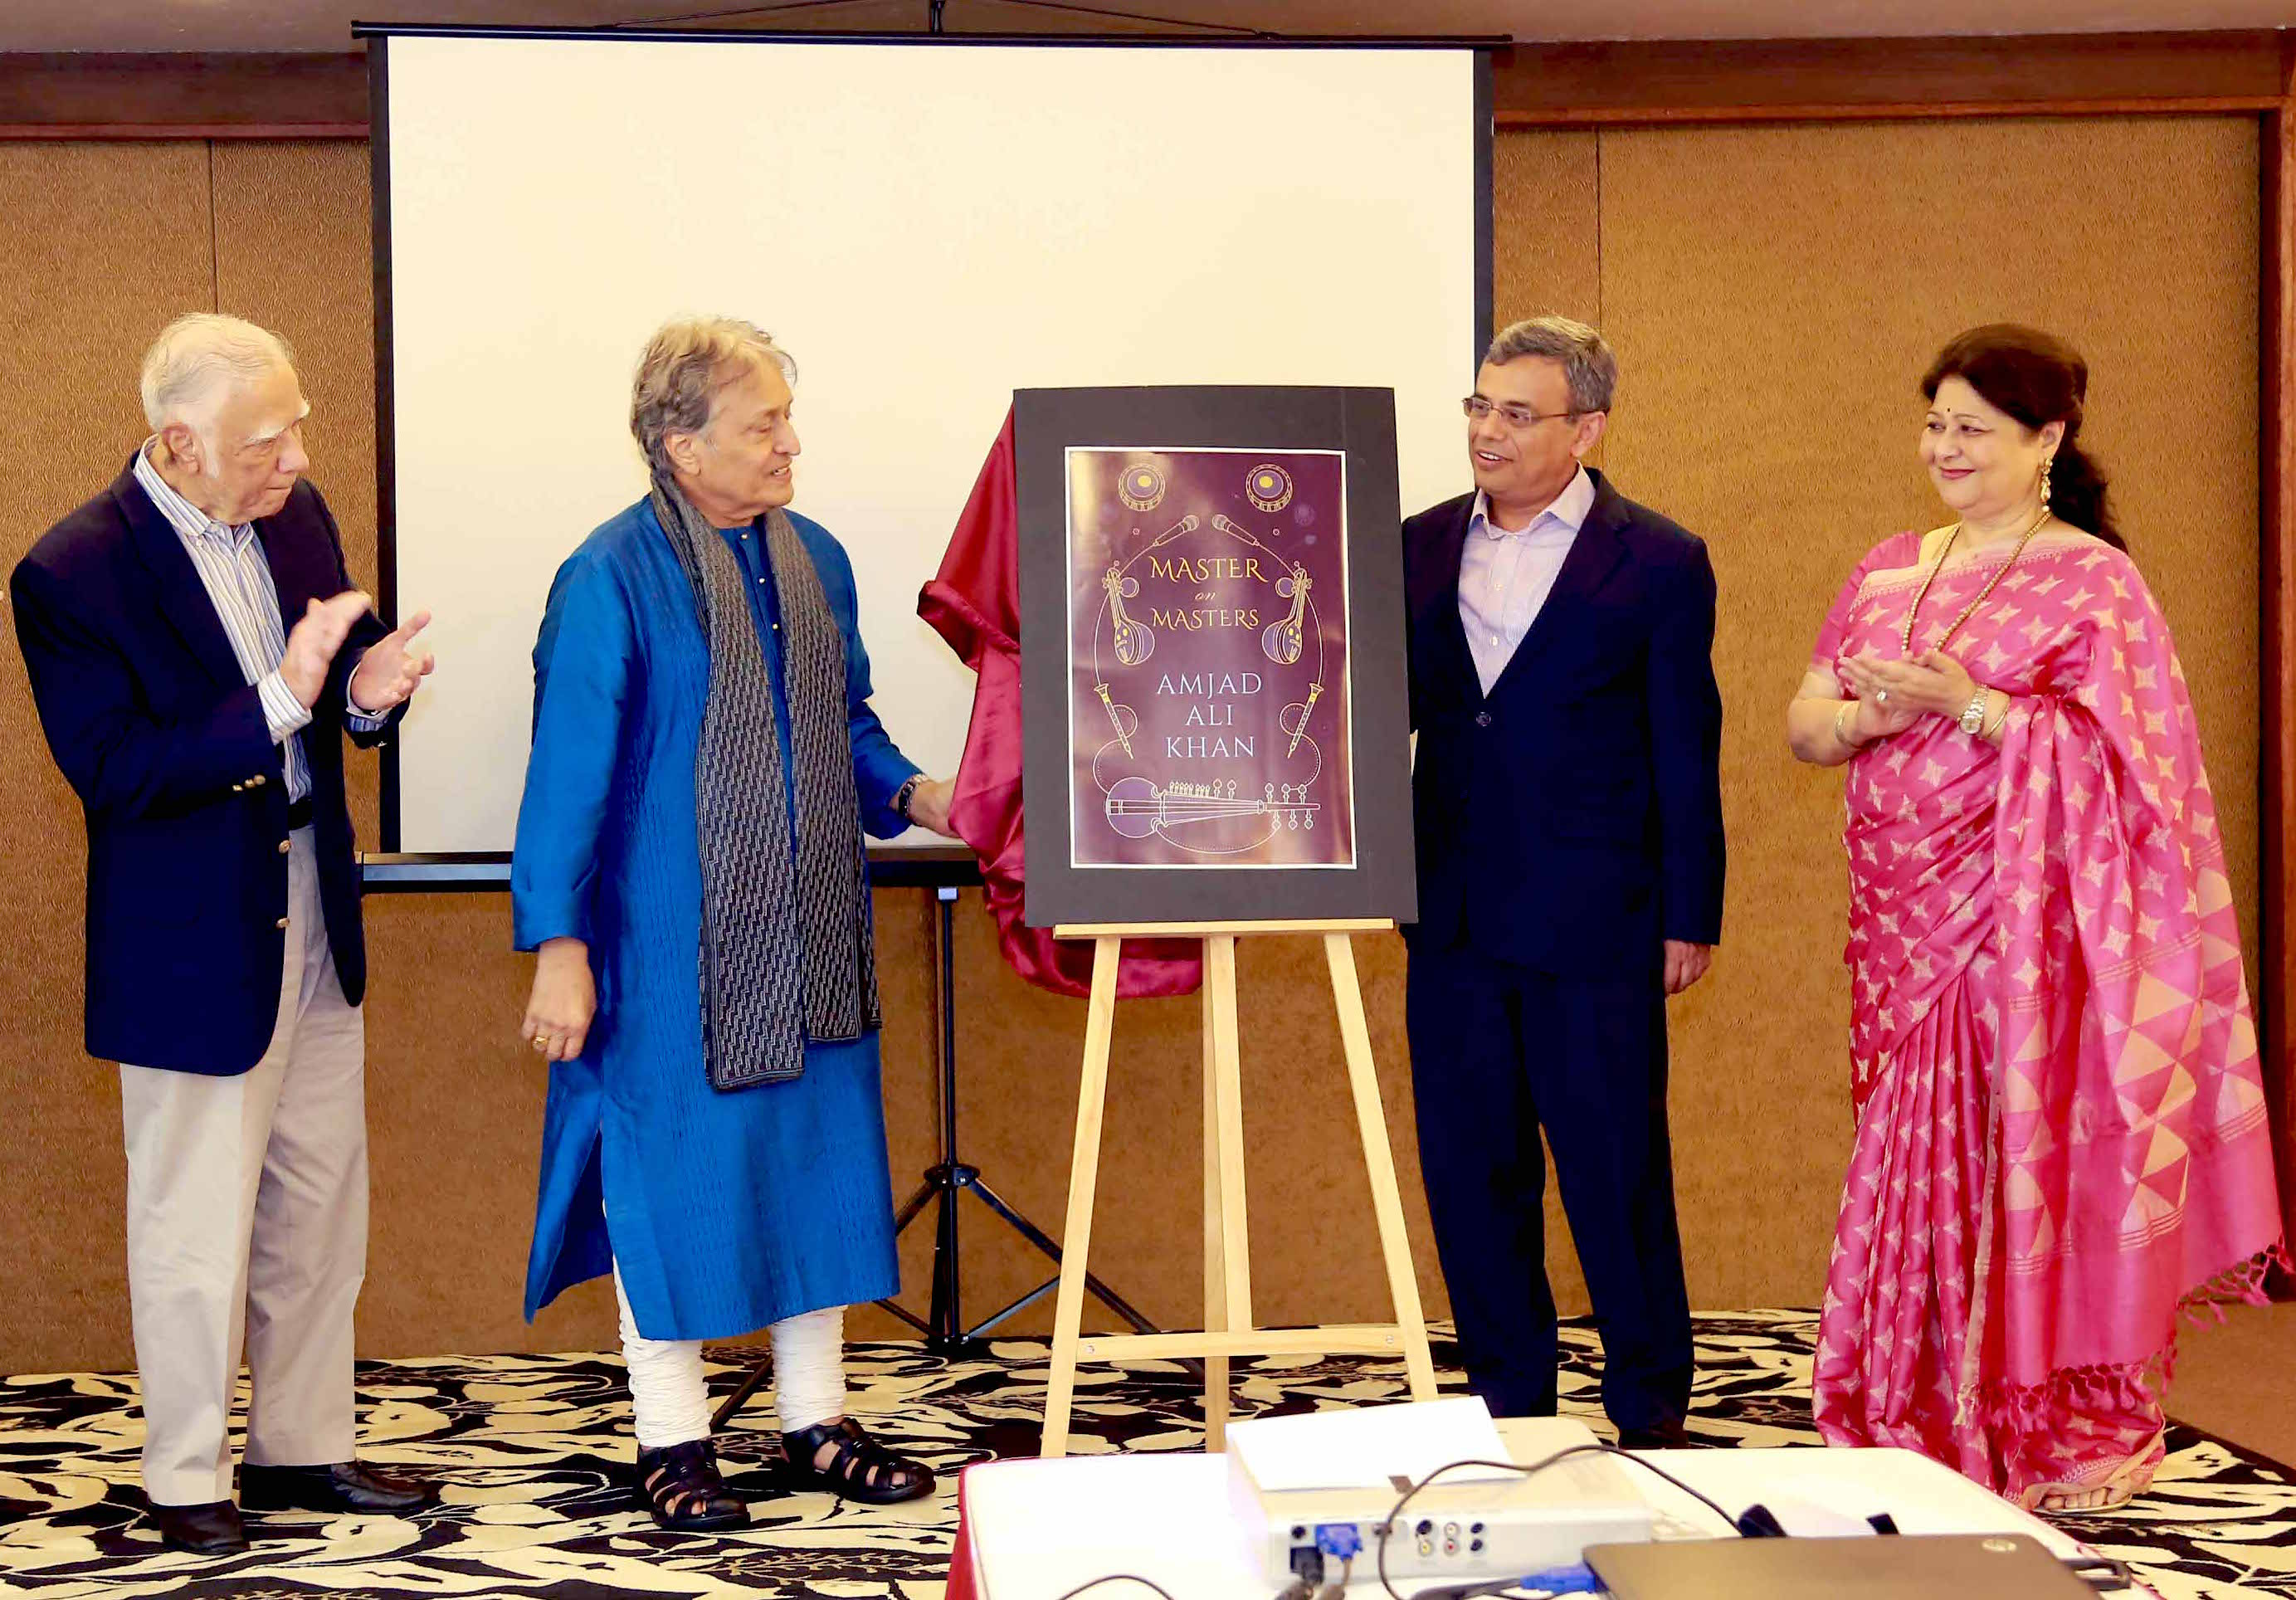 (L-R): Ambassador Gopinath Pillai, Chairman, ISAS and Ambassador-at-Large, Singapore, Sarod Maestro Ustad Amjad Ali Khan, Jawed Ashraf, High Commissioner of India to Singapore, Subhalakshmi Khan releasing the book Master on Masters